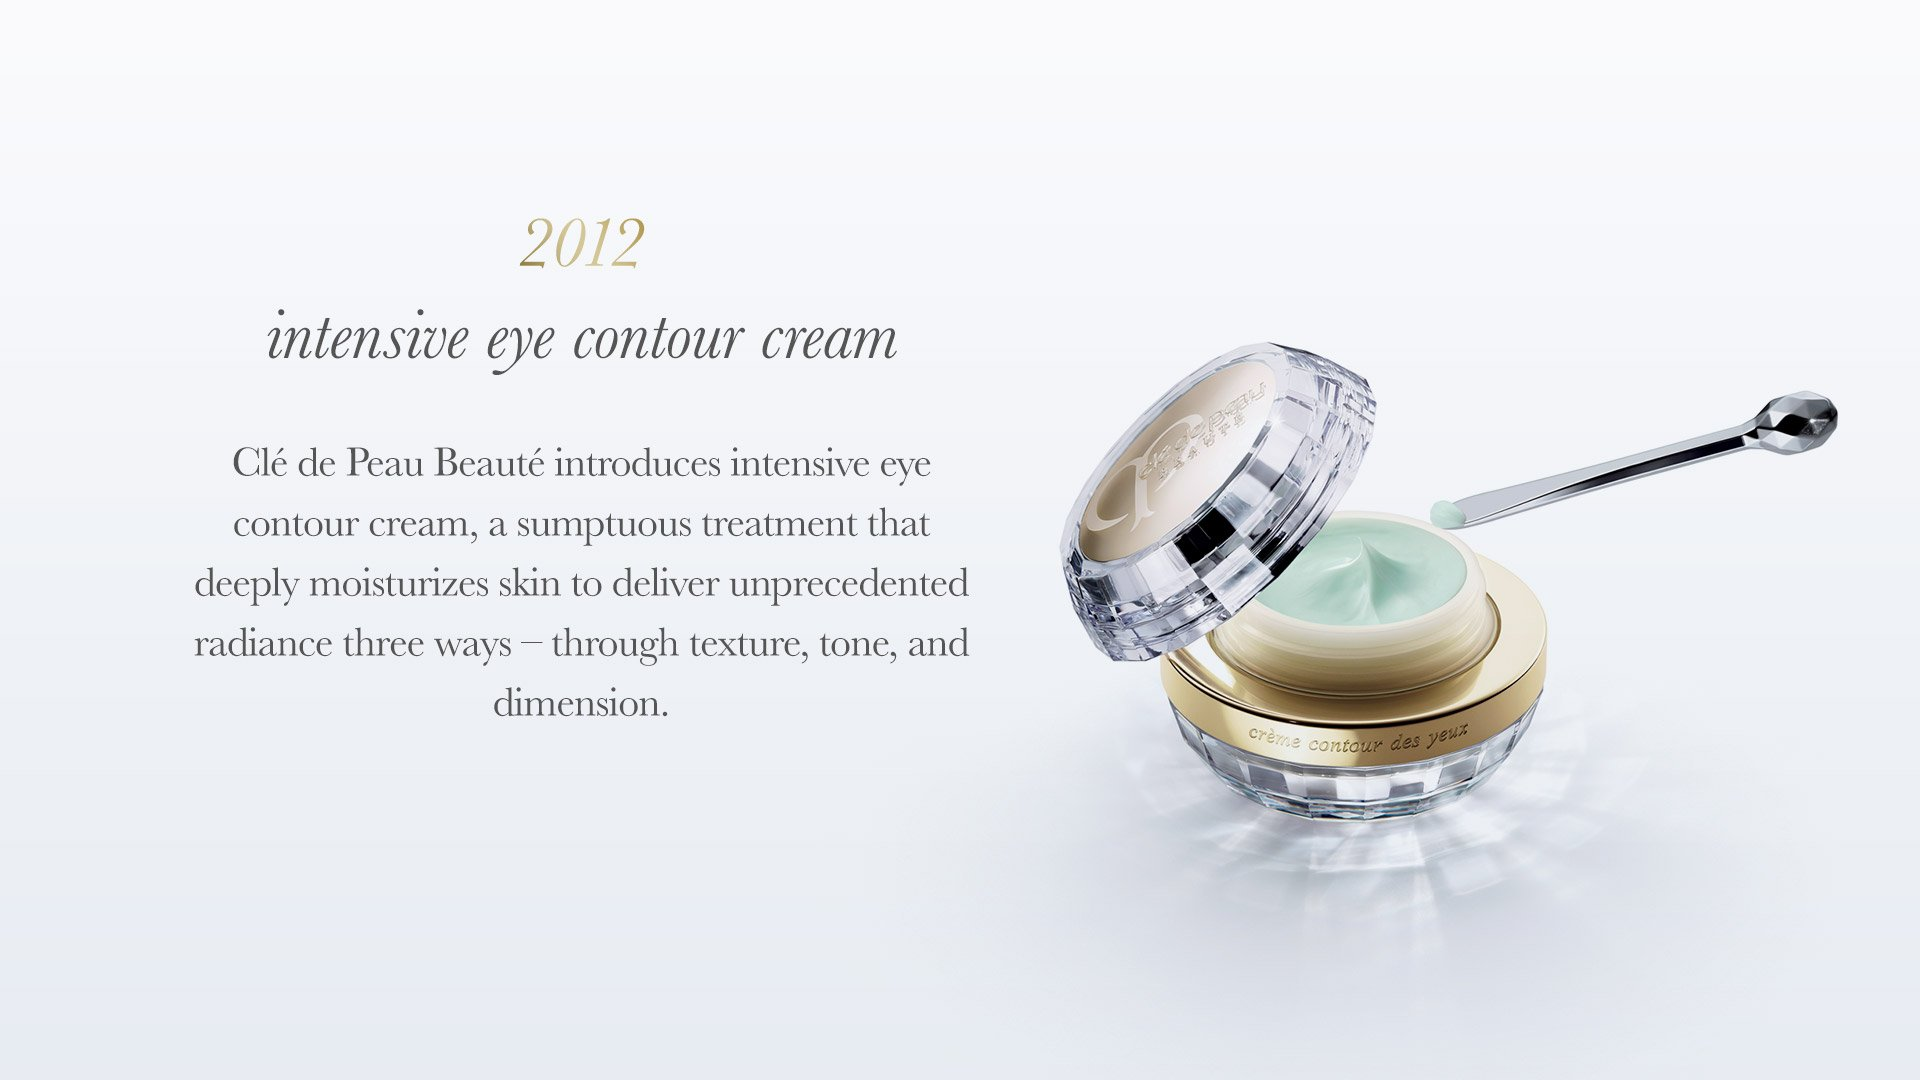 Clé de Peau Beauté introduces Intensive Eye Contour Cream, a sumptuous treatment that deeply moisturizes skin to deliver unprecedented radiance three ways - through texture, tone and dimension.